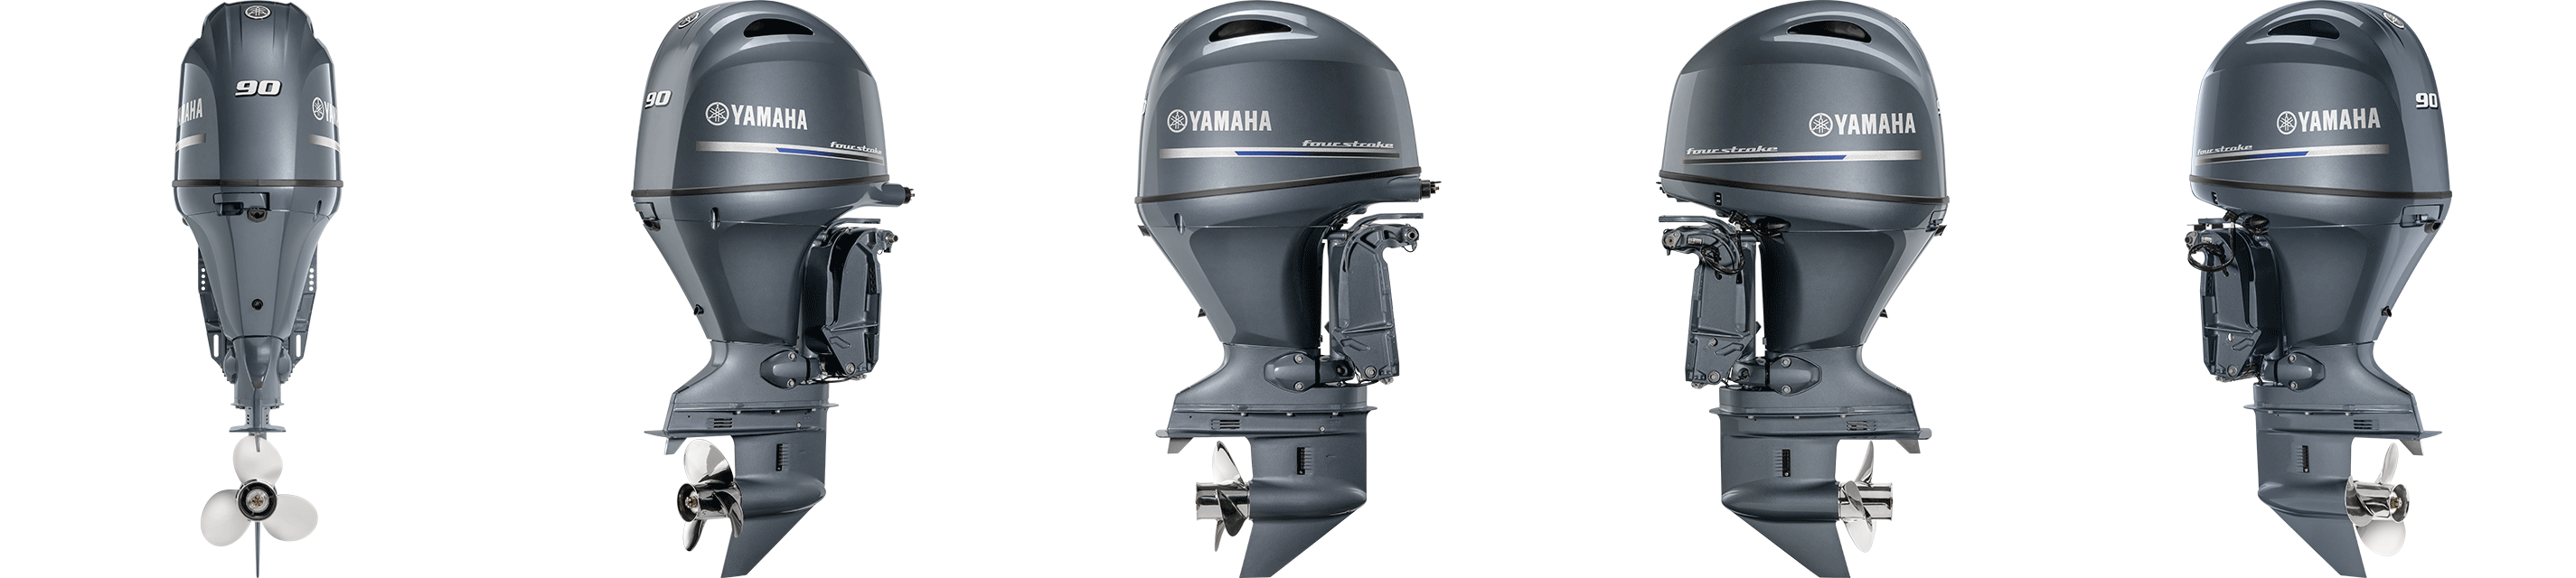 Outboards 115 To 75 Hp 18l I 4 Yamaha F90 Wiring Diagram And Is Measured Without Motor Oil Gearcase Propeller Except Models 25 Under Which Include A Standard